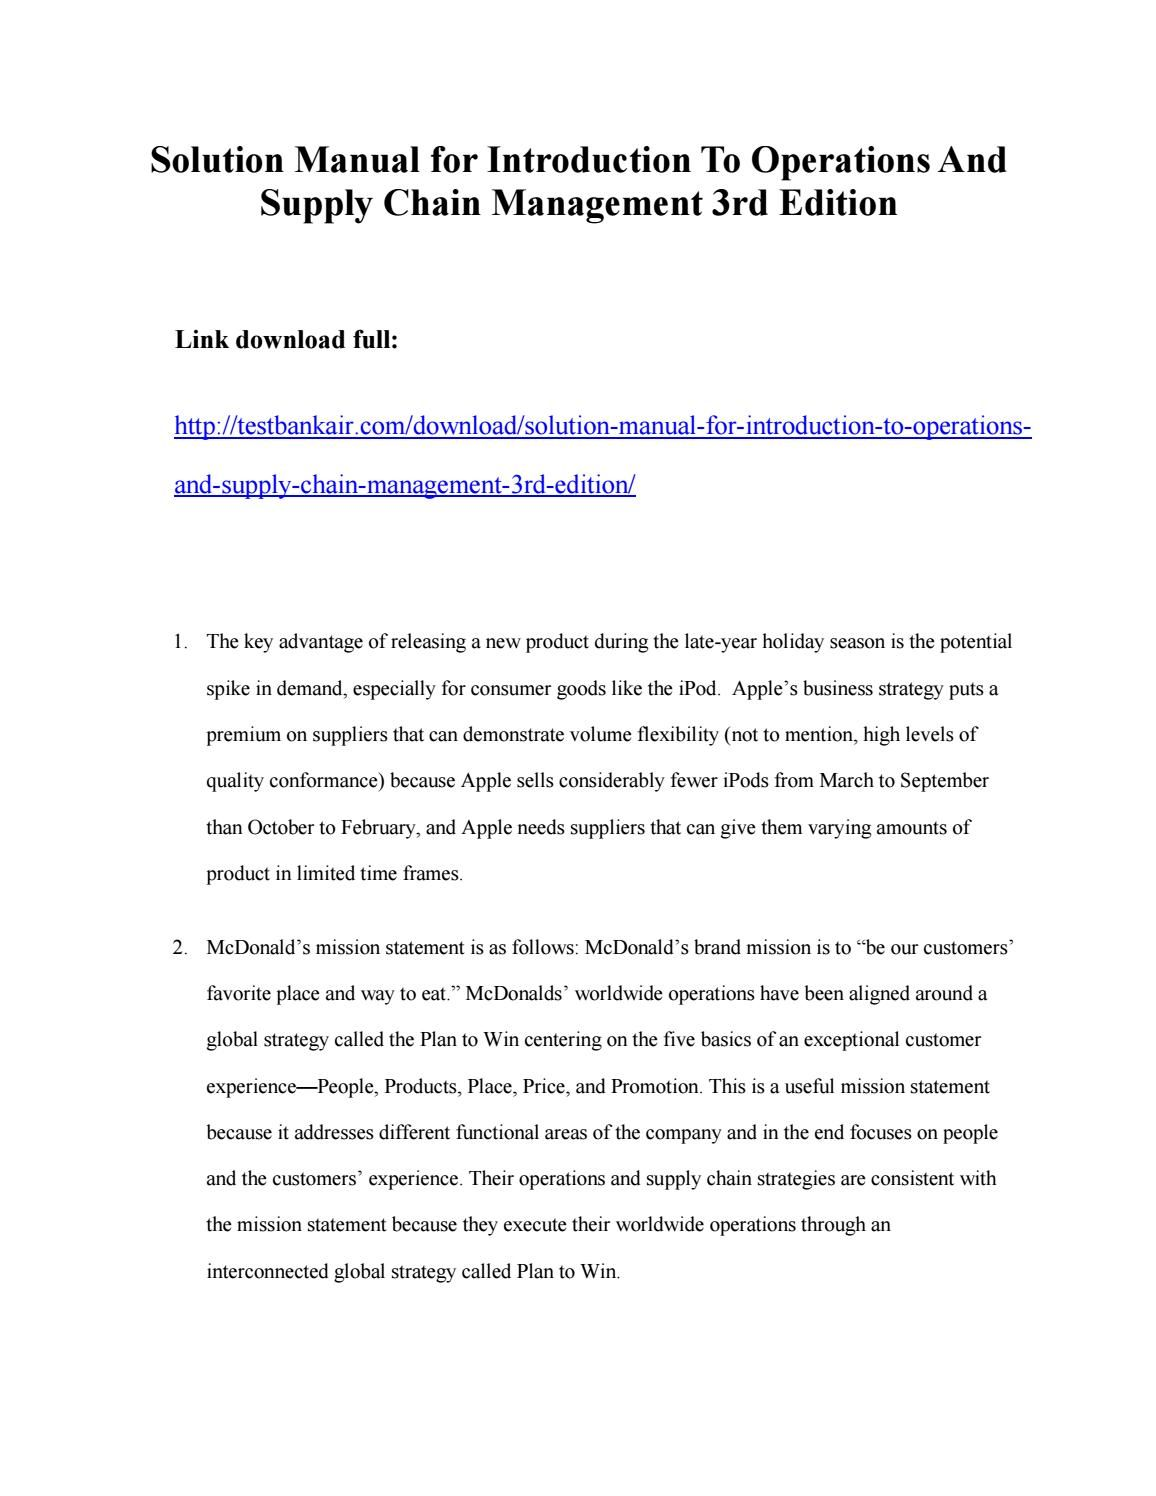 download solution manual for introduction to operations and supply rh pinterest com solution manual for operations and supply chain management 14th edition by jacobs operations and supply chain management solutions manual pdf